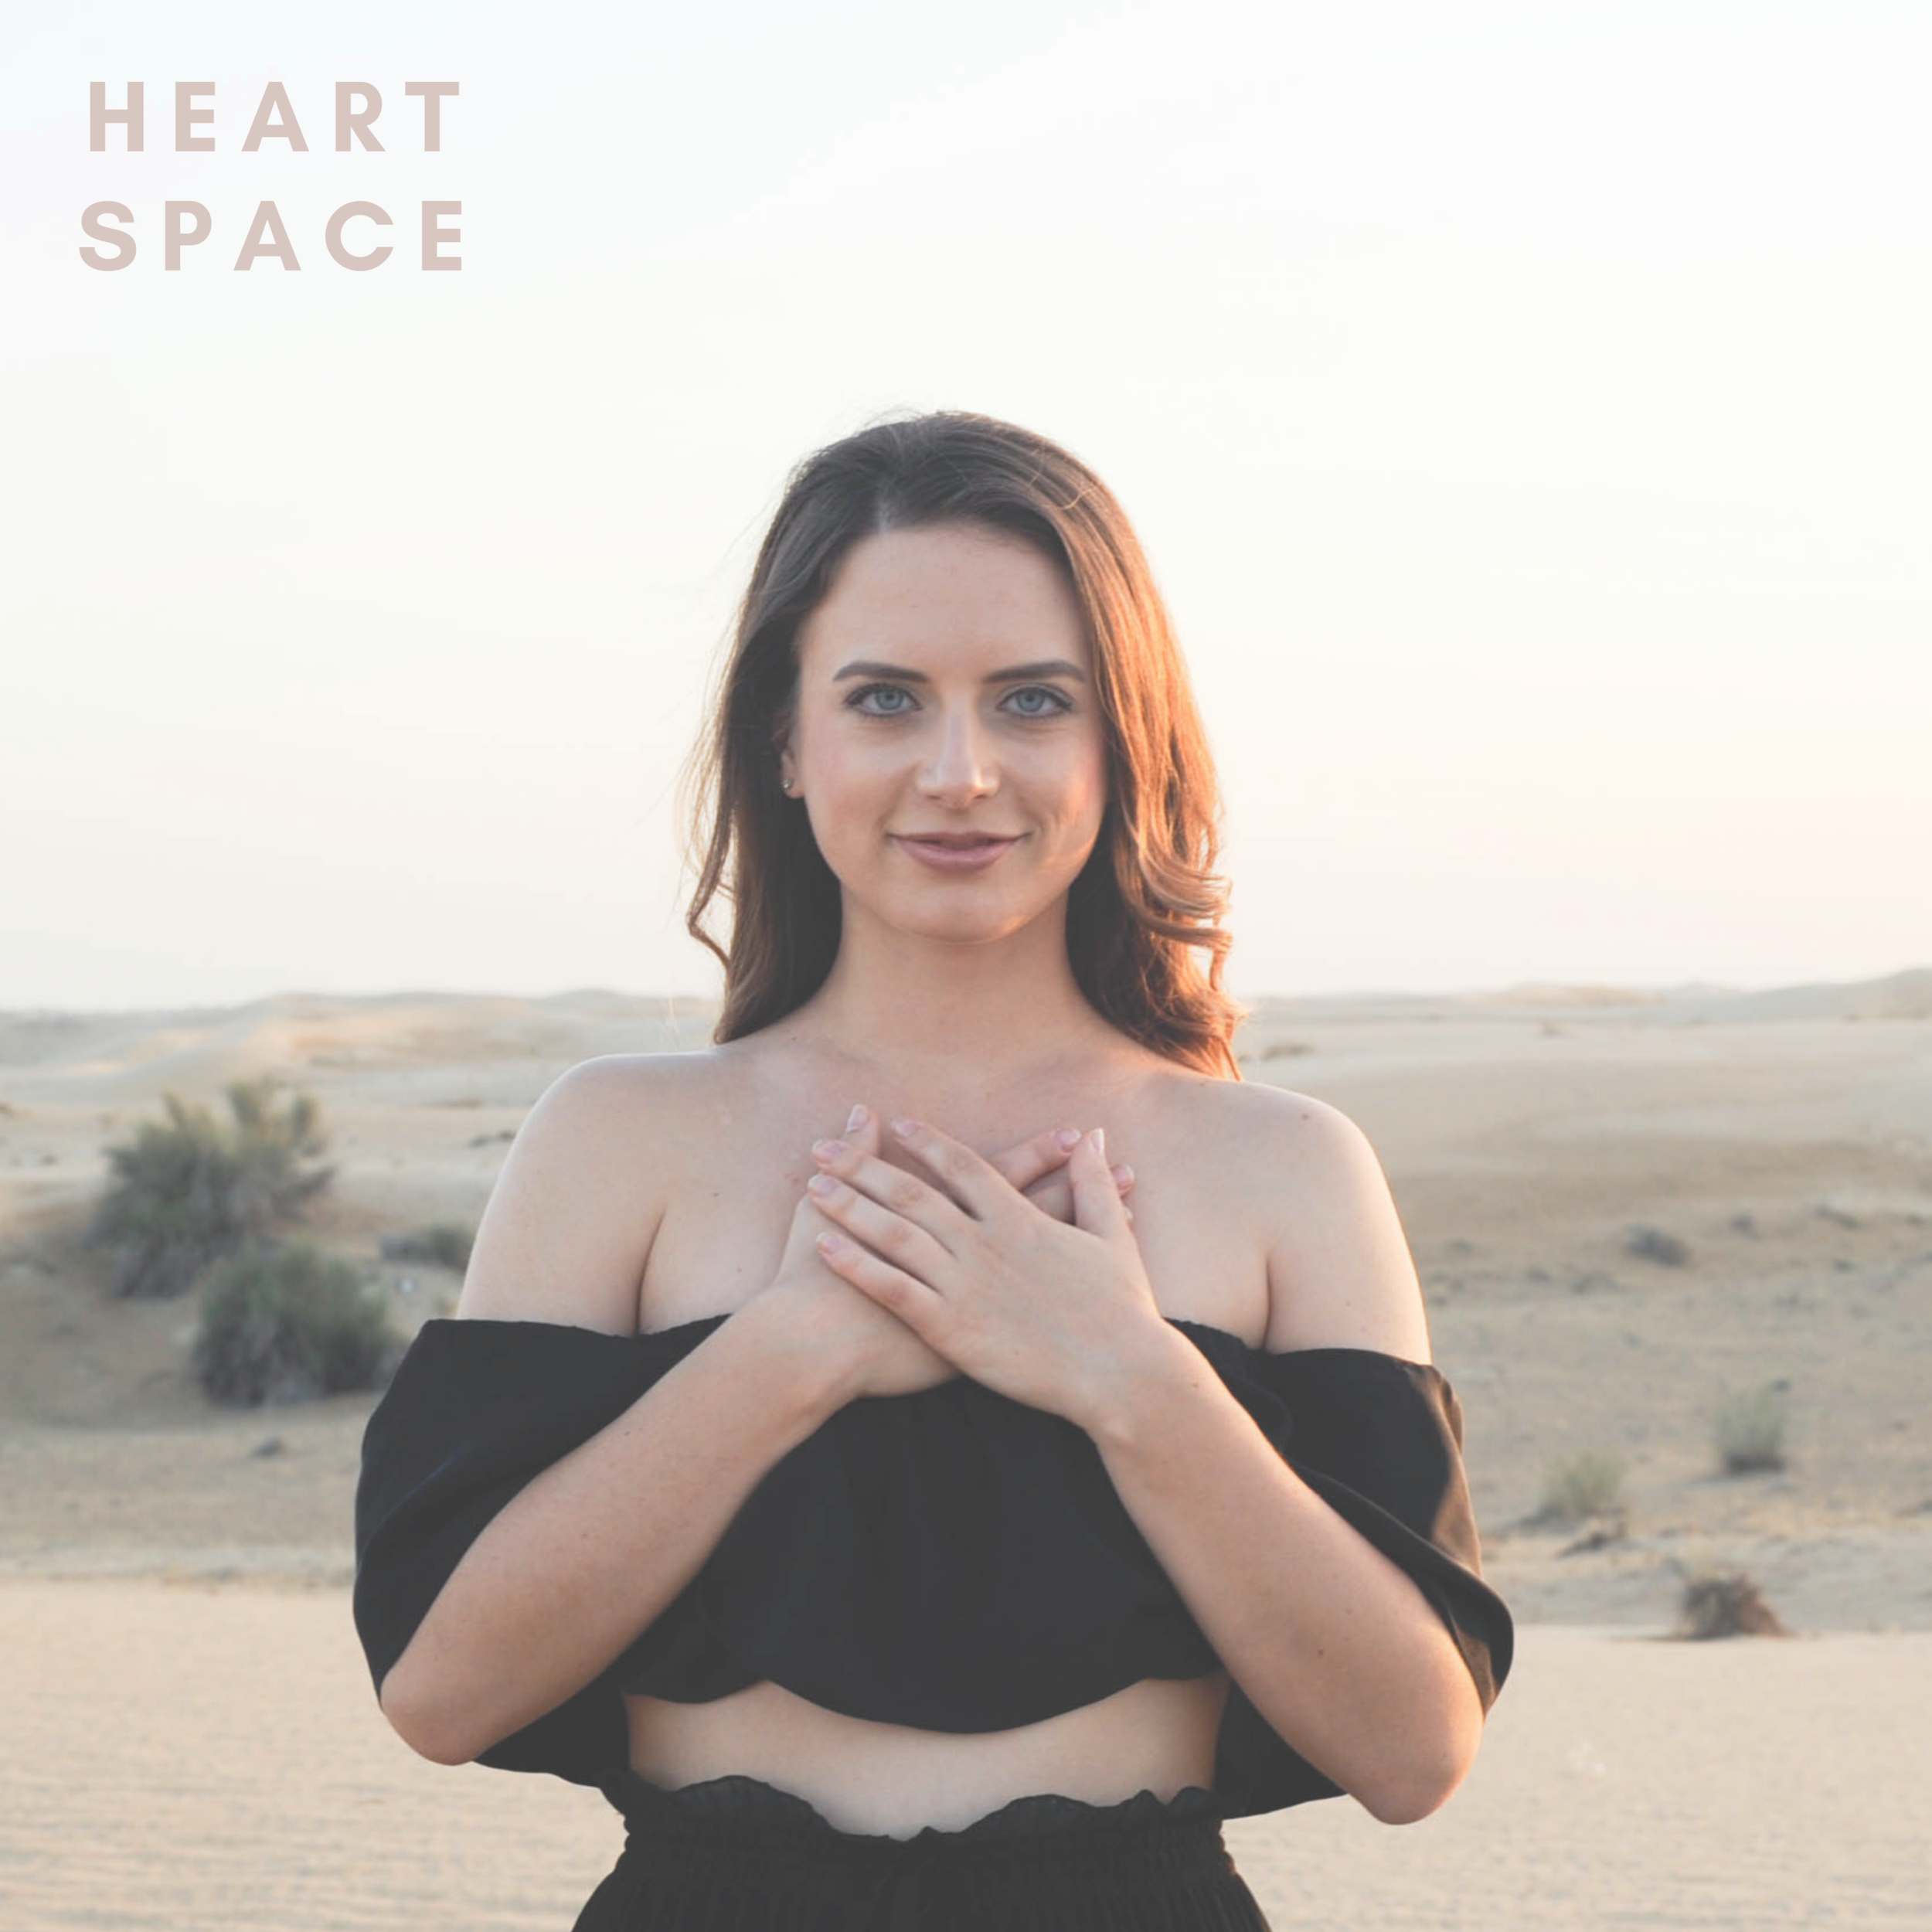 sarah-lewis-intuitive-life-coach-podcast-heart-space-intuition